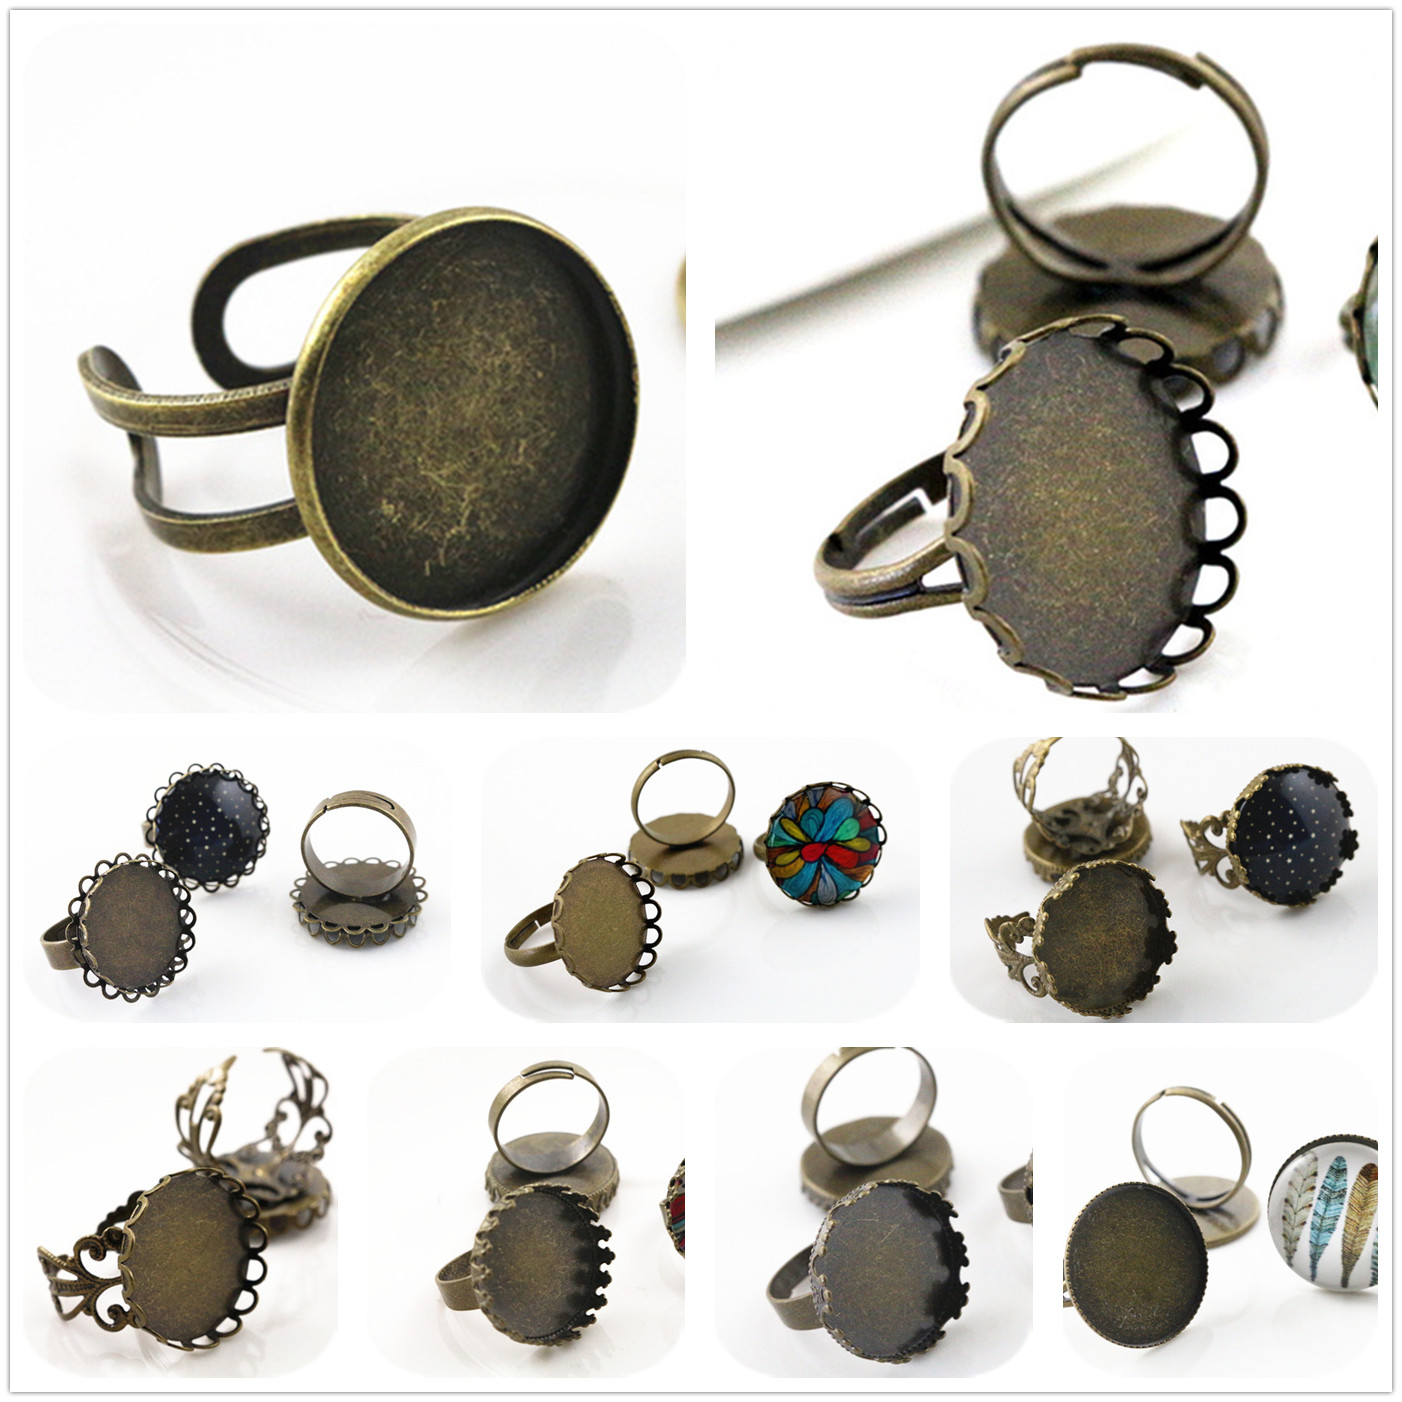 20mm 5pcs/Lot 8 Style Bronze Plated Brass Adjustable Ring Settings Blank/Base,Fit 20mm Glass Cabochons,Buttons;Ring Bezels 18x25mm 5pcs light silver and bronze plated brass drop adjustable ring settings blank base fit 18x25mm glass cabochons